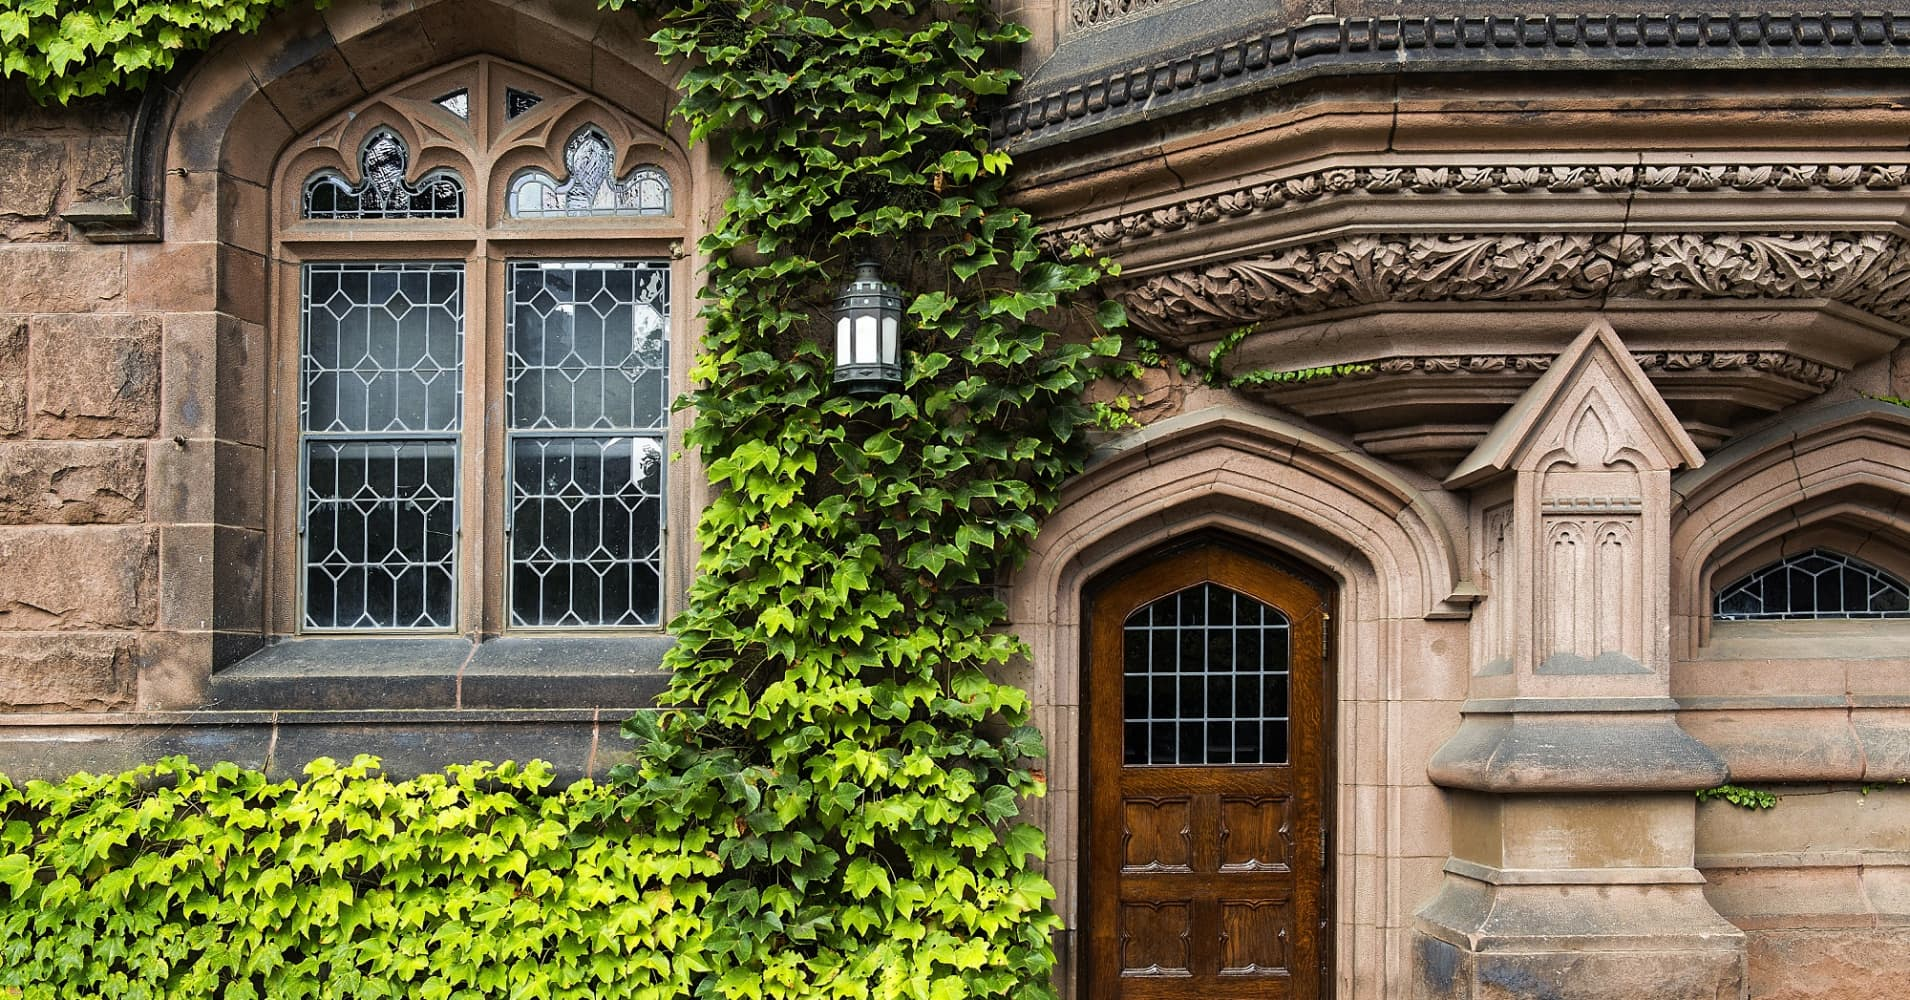 Ivy League architecture at Princeton University.